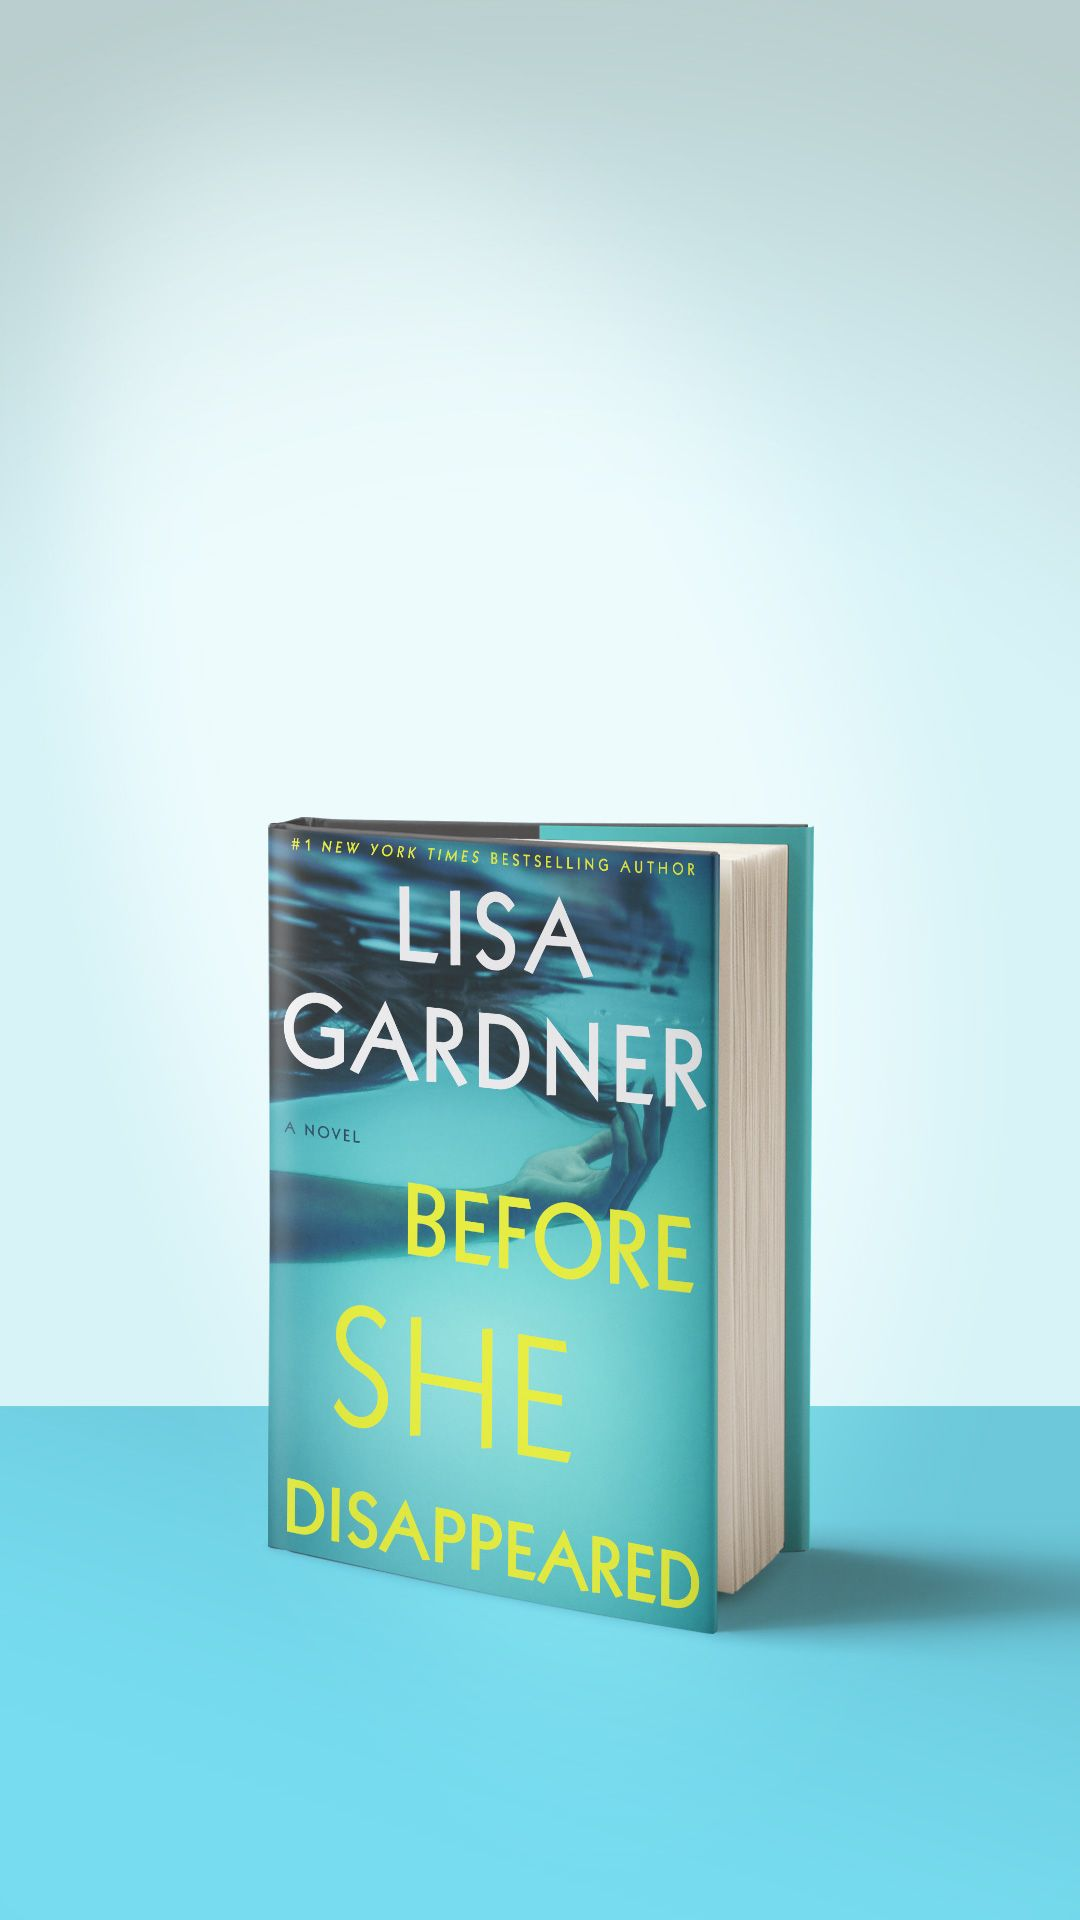 Before she disappeared by lisa gardner 9781524745073